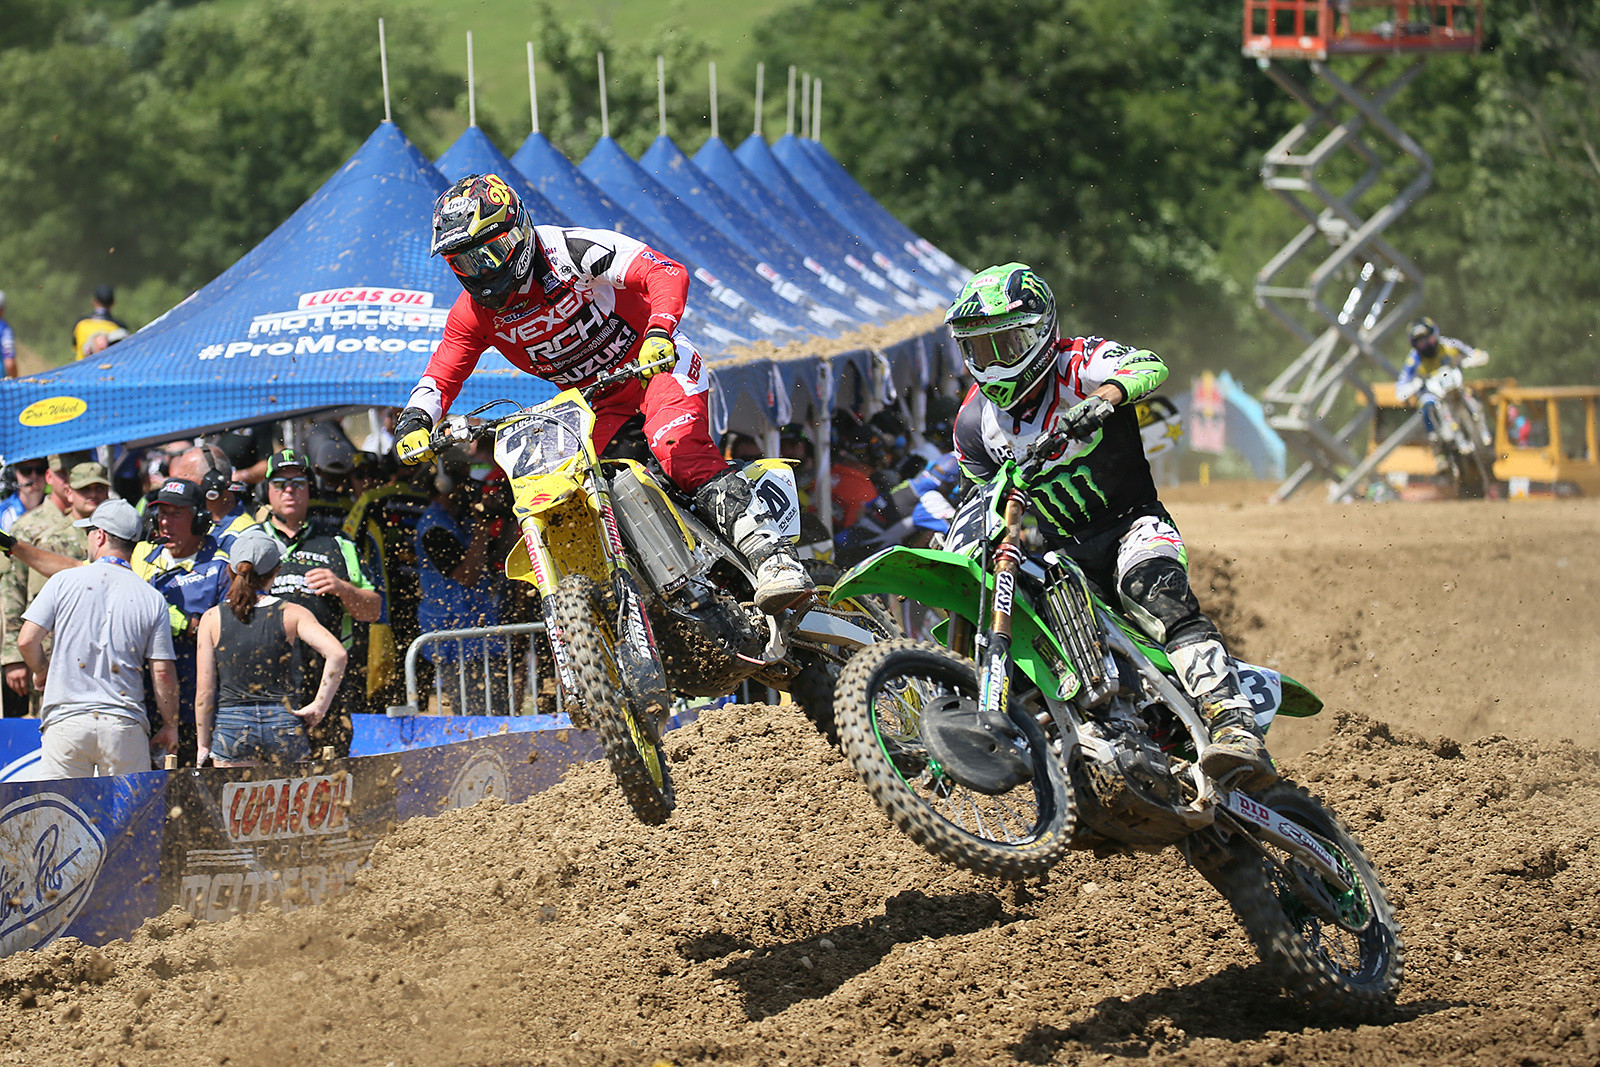 Eli Tomac was on a mission to get to the front, and he had a huge lead at the end of moto two.